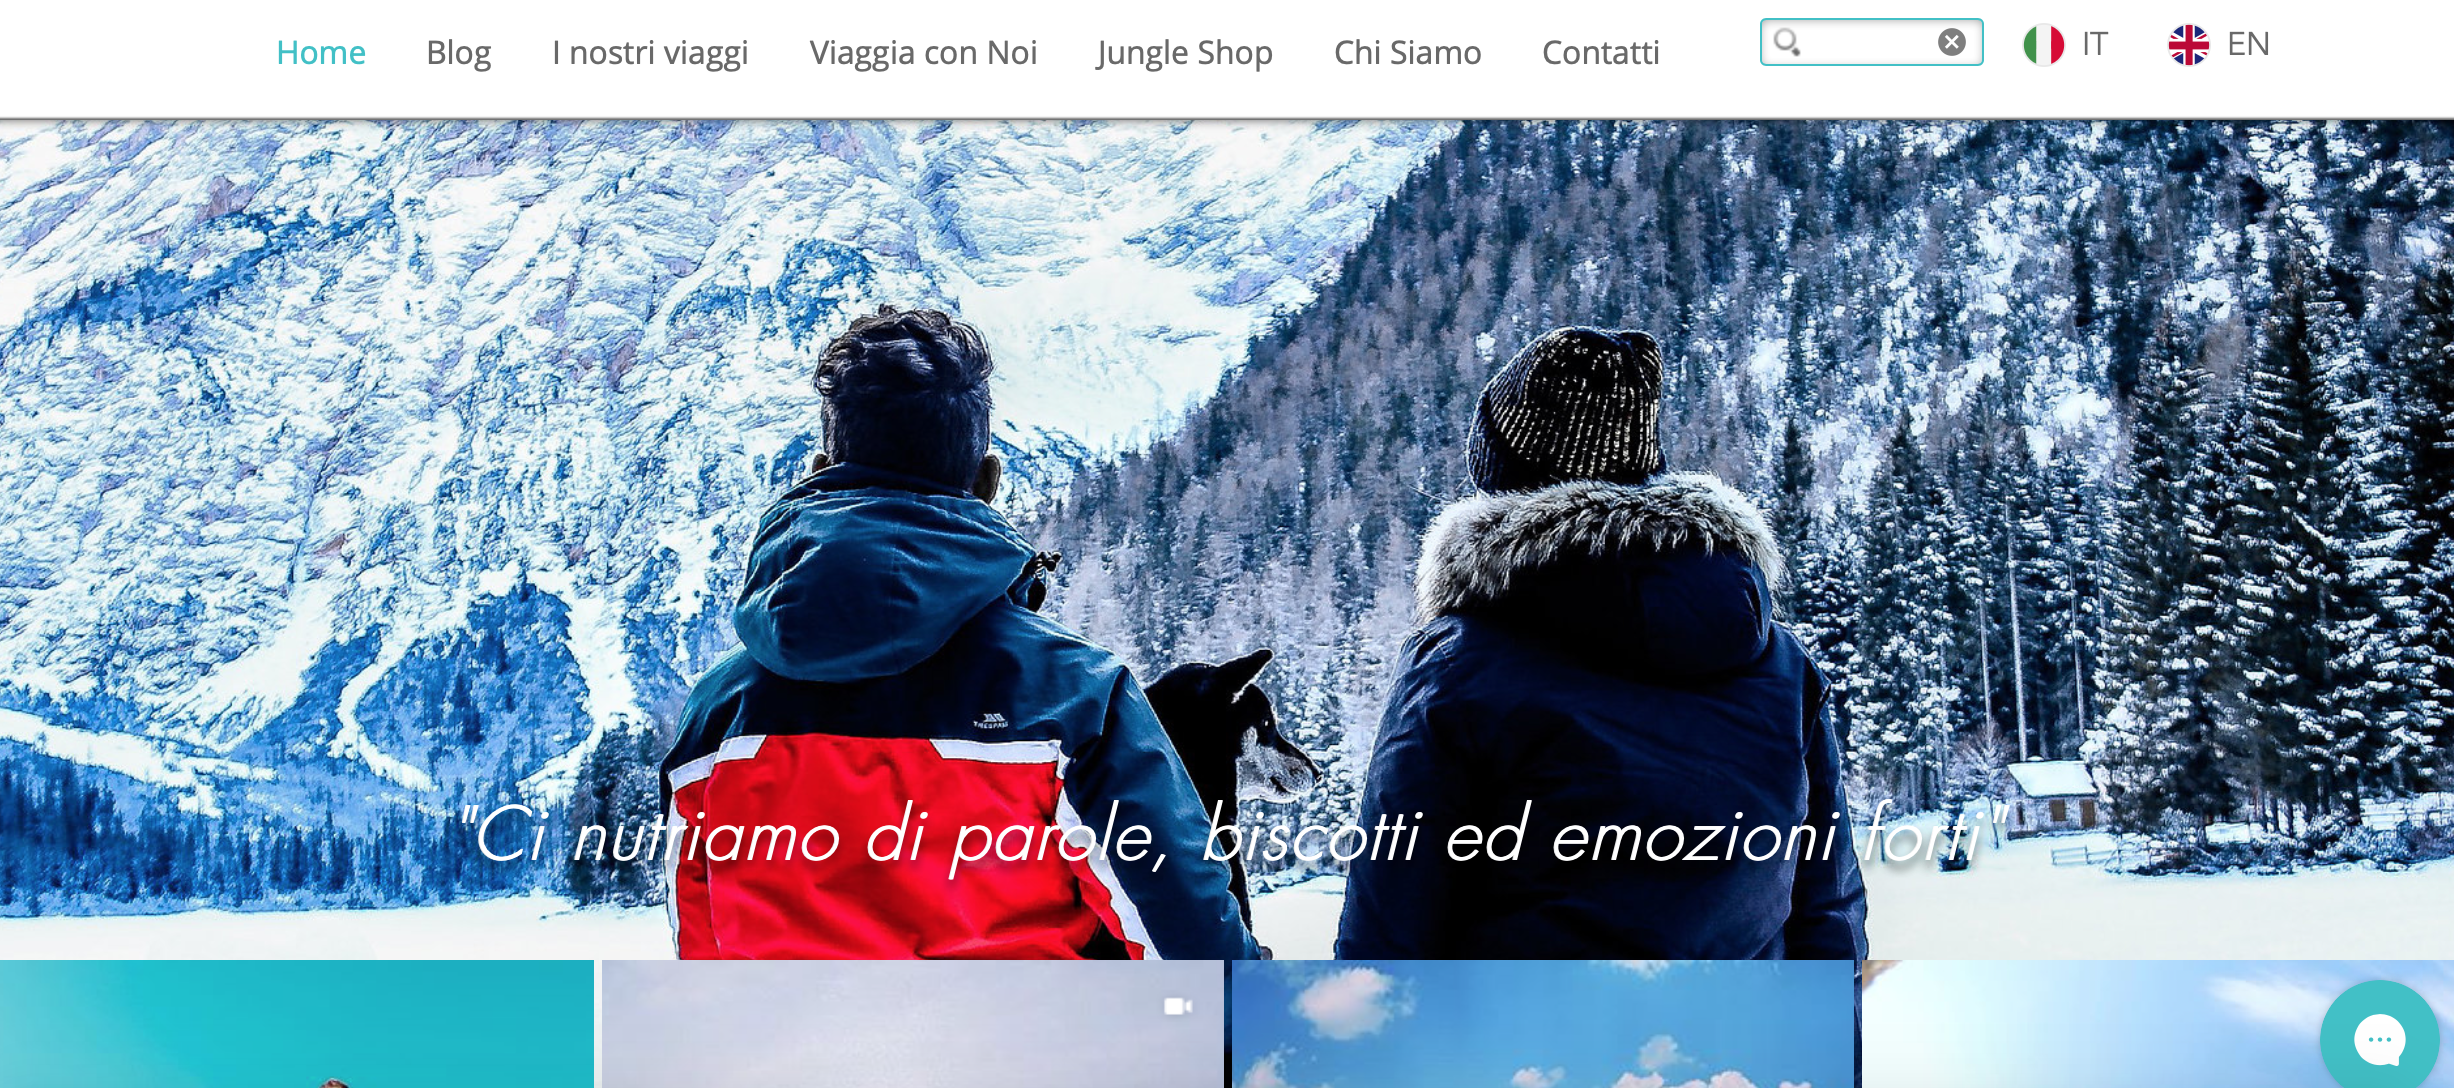 Jungle Bag Travel Blog: parole, biscotti ed emozioni forti...